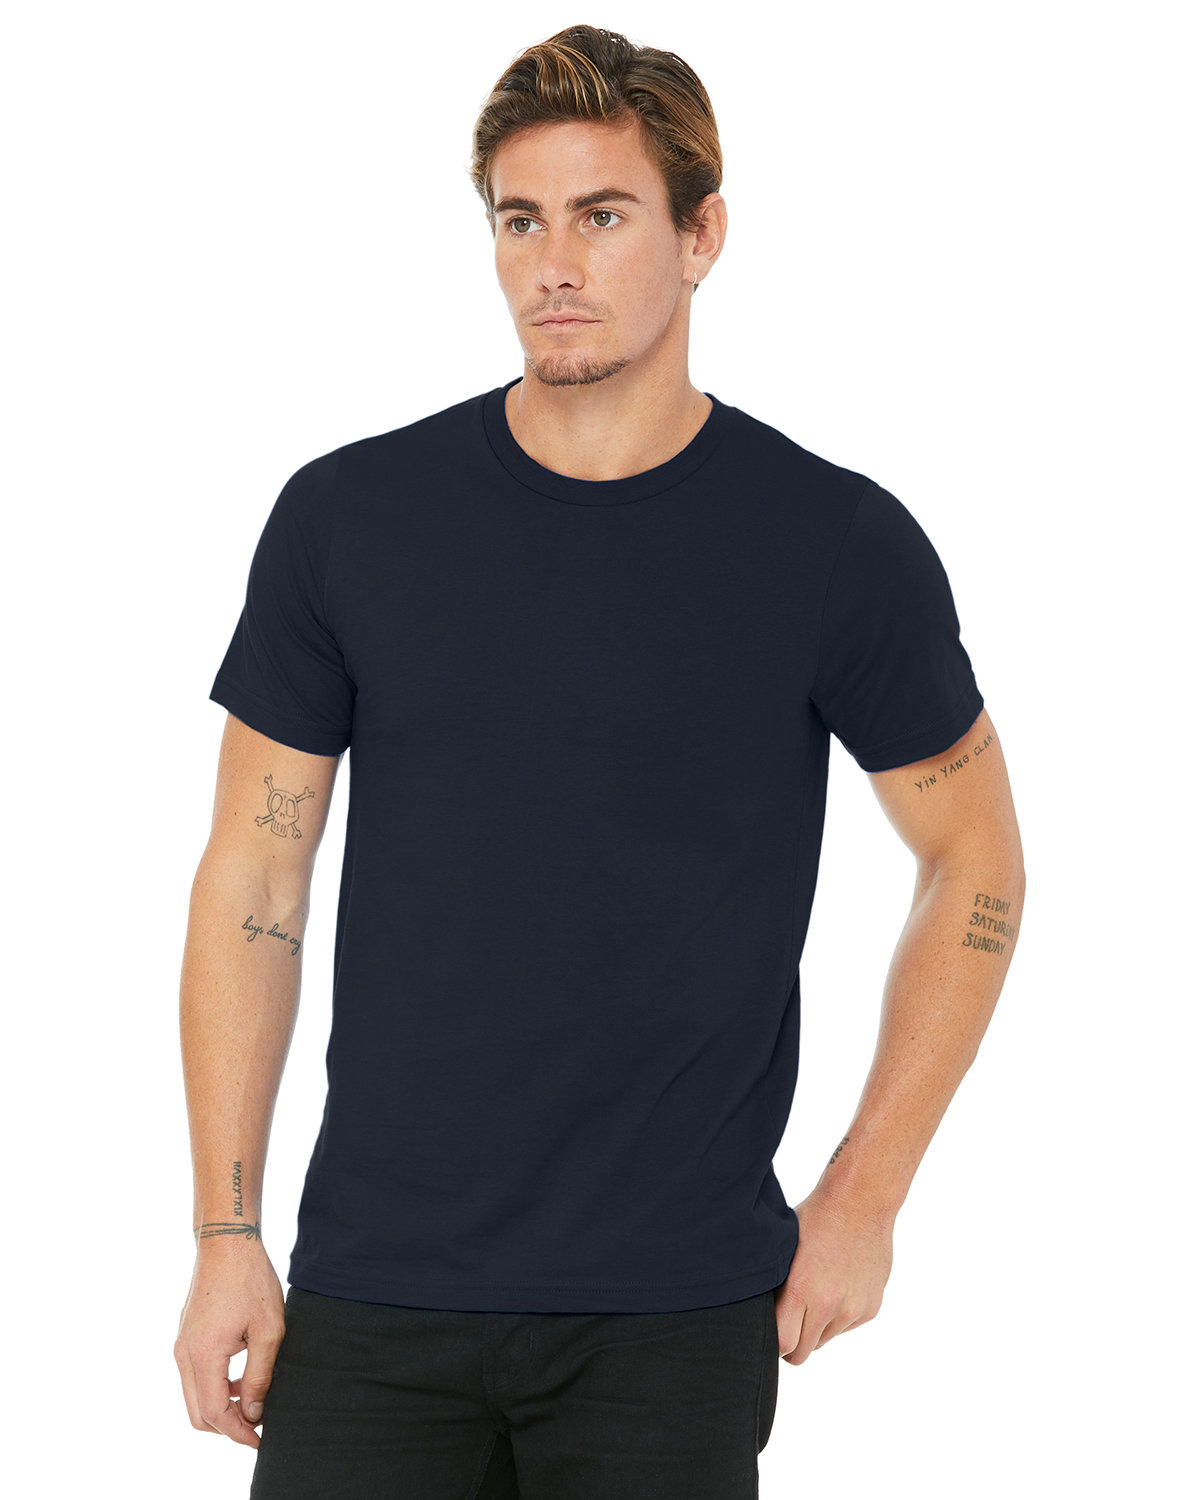 Bella + Canvas Unisex Made In The USA Jersey T-Shirt NAVY